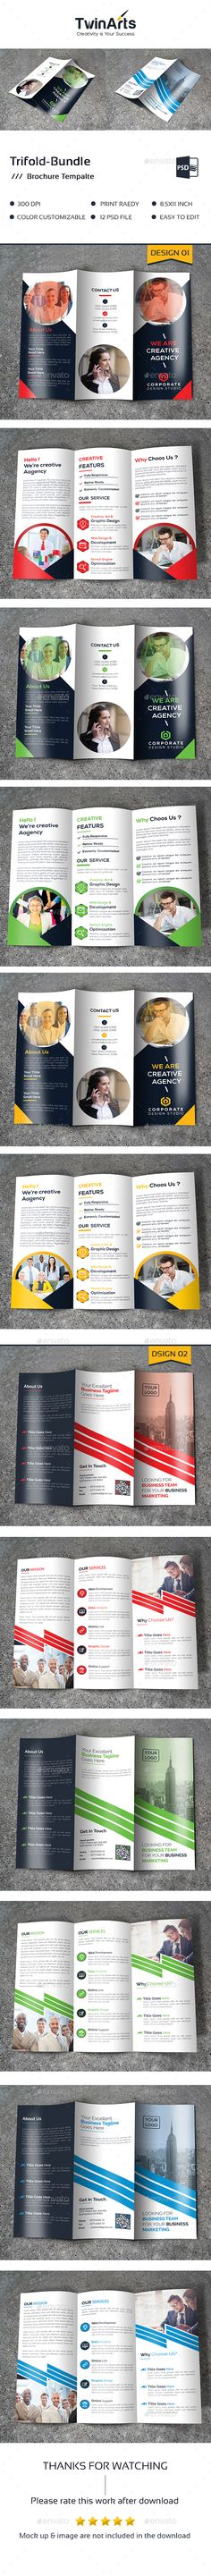 2 Tri-fold Brochure Template PSD. Download here: http://graphicriver.net/item/trifold-bundle_2-in-1/16801265?ref=ksioks